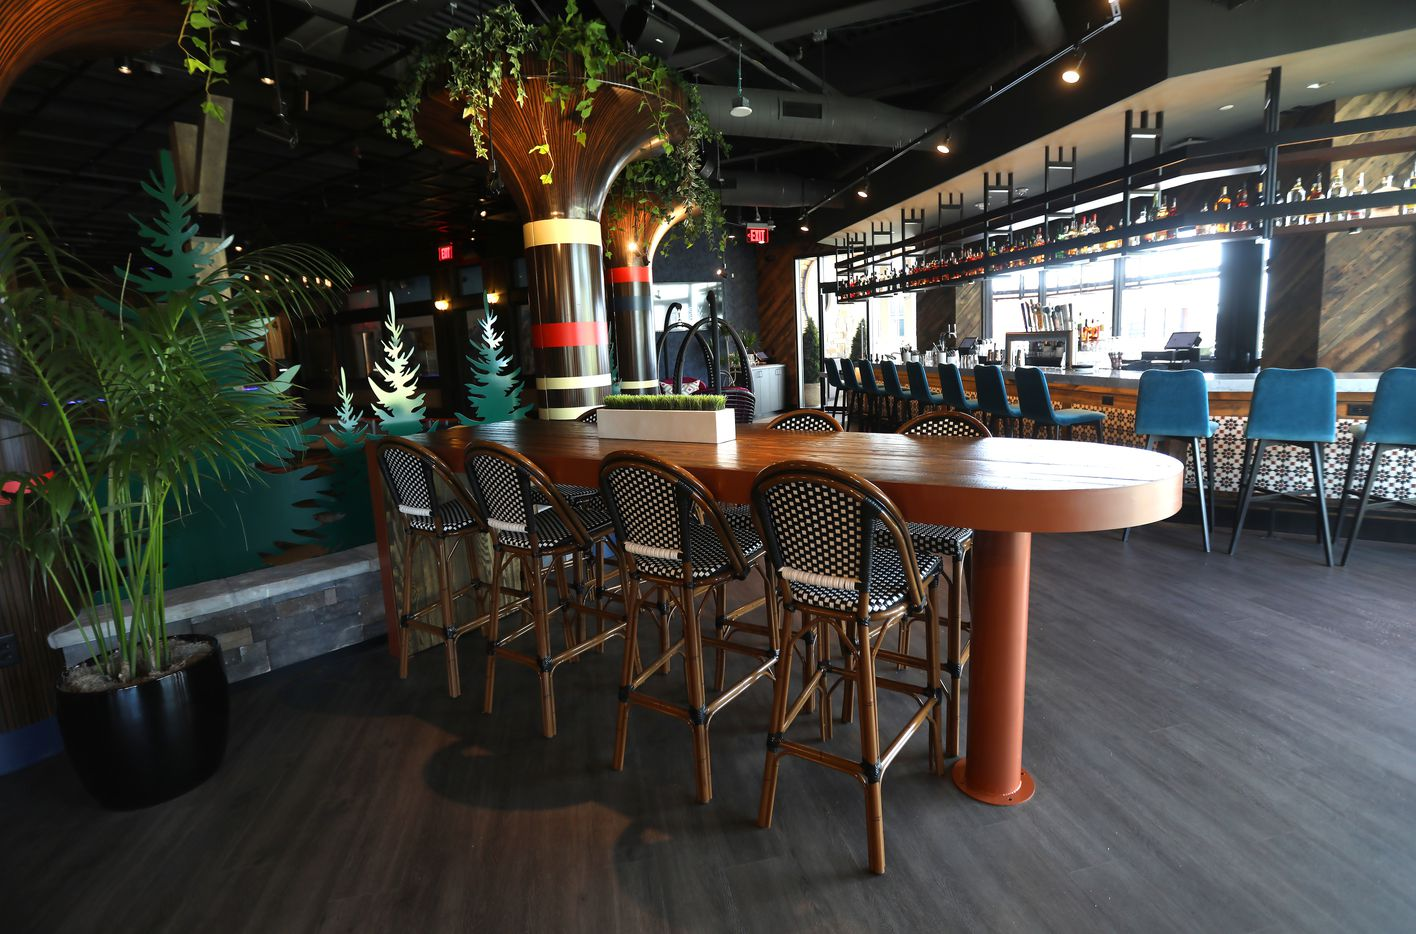 One of the bar areas at Puttery, a new indoor mini golf and entertainment concept in The Colony, Texas, Monday, August 30, 2021. (Anja Schlein/Special Contributor)